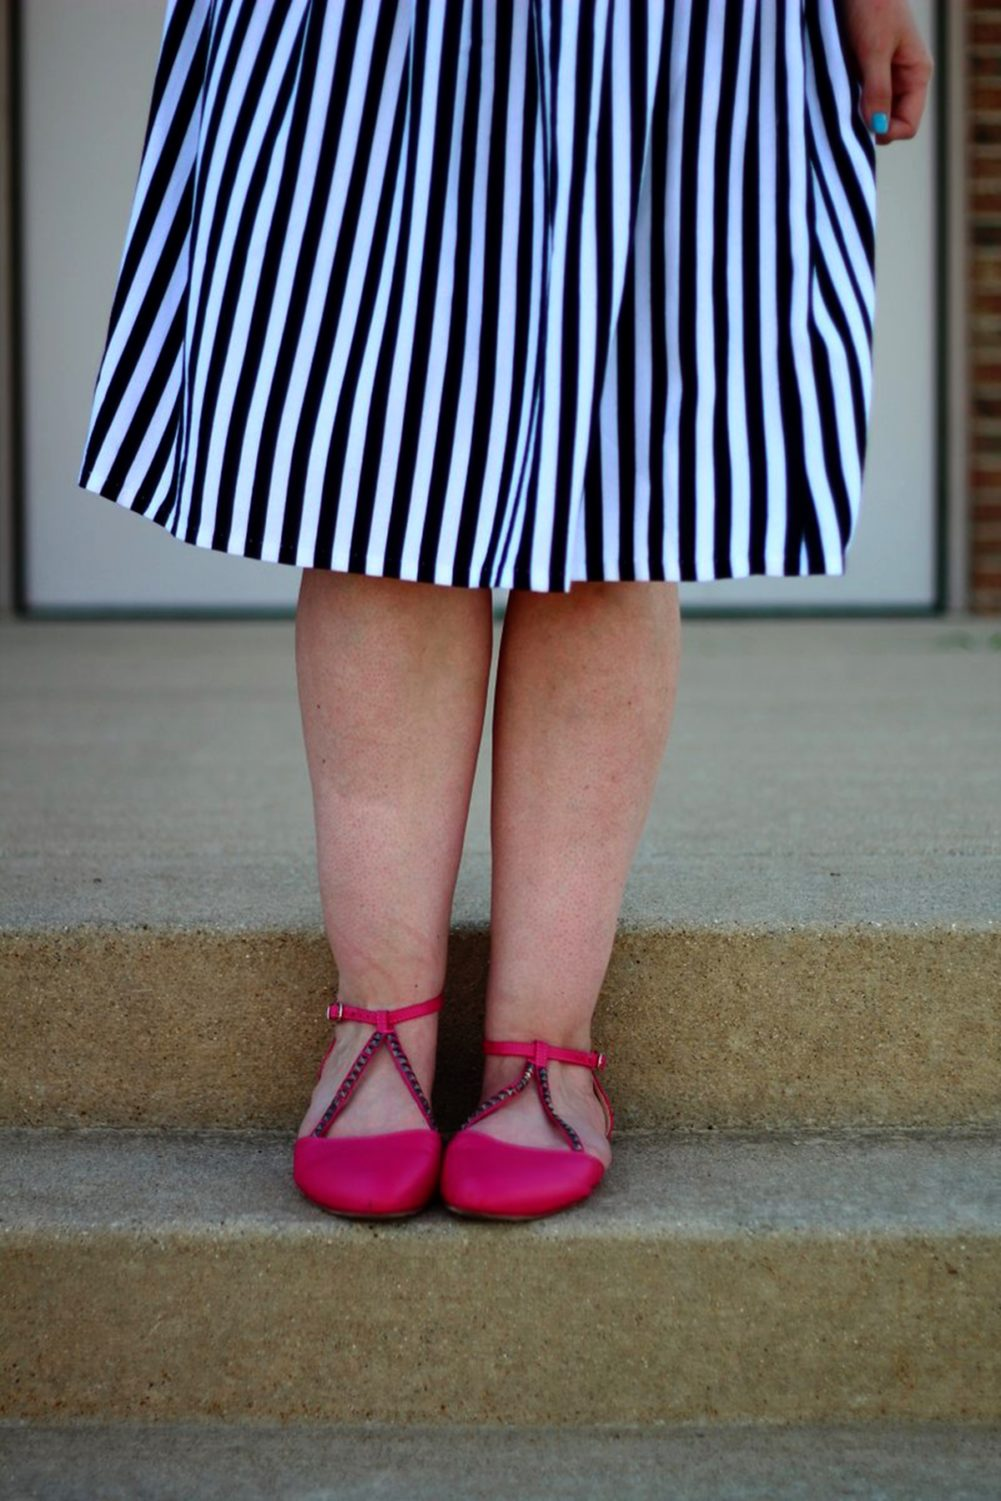 Outfit details: black and white striped skirt, pink flats.